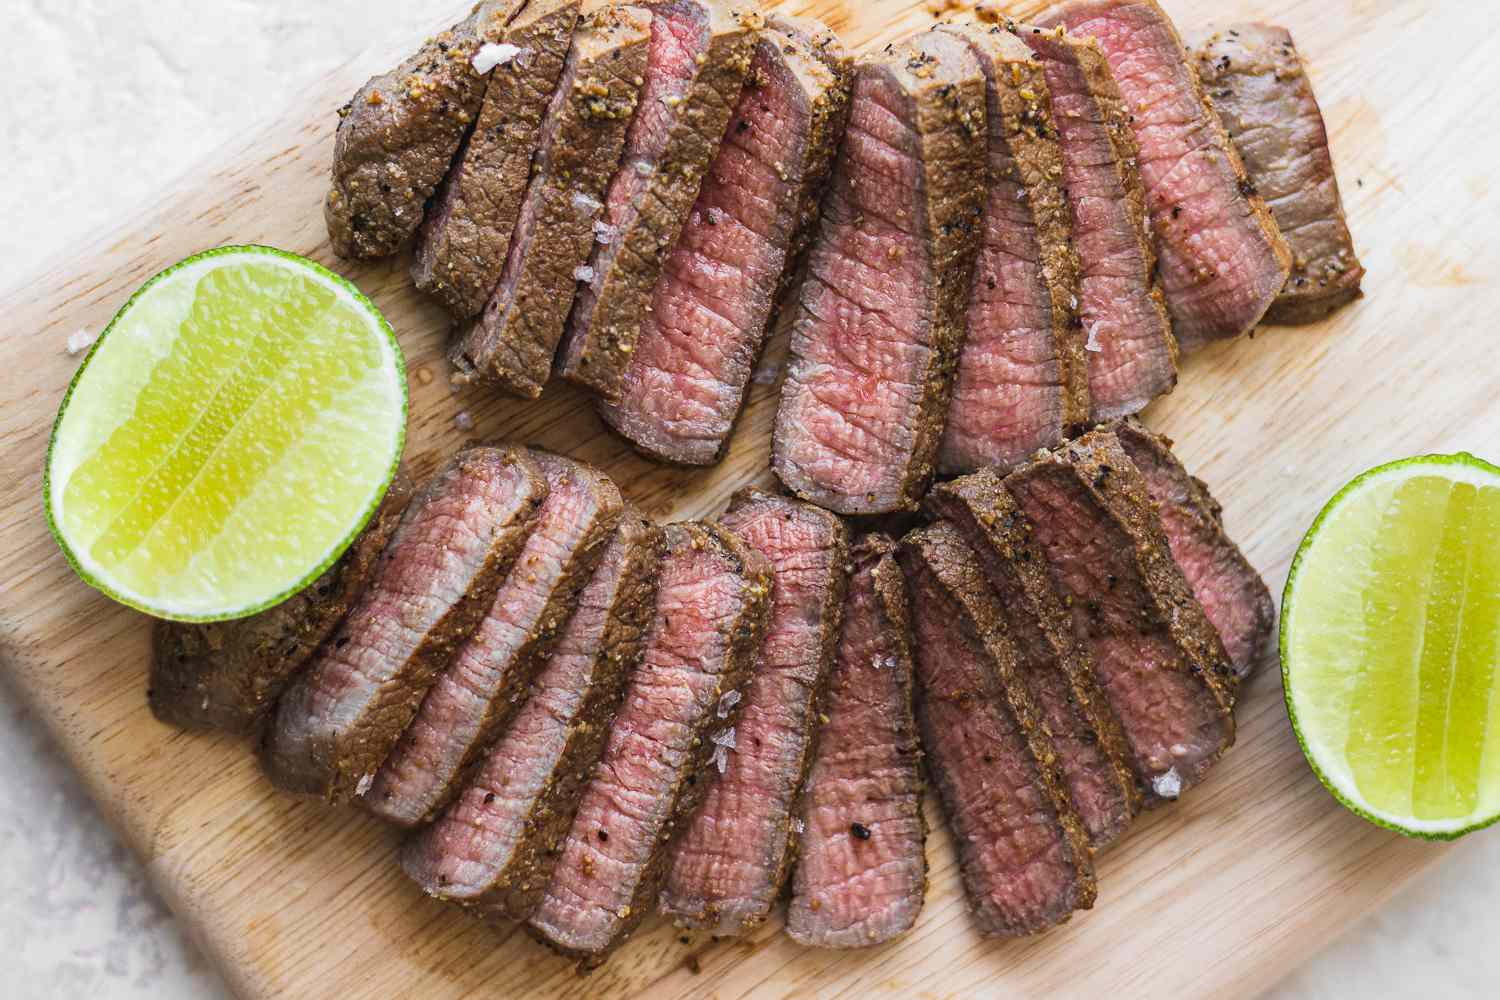 Spiced Lime-Marinated Eye of Round Steaks, sliced and garnished with limes